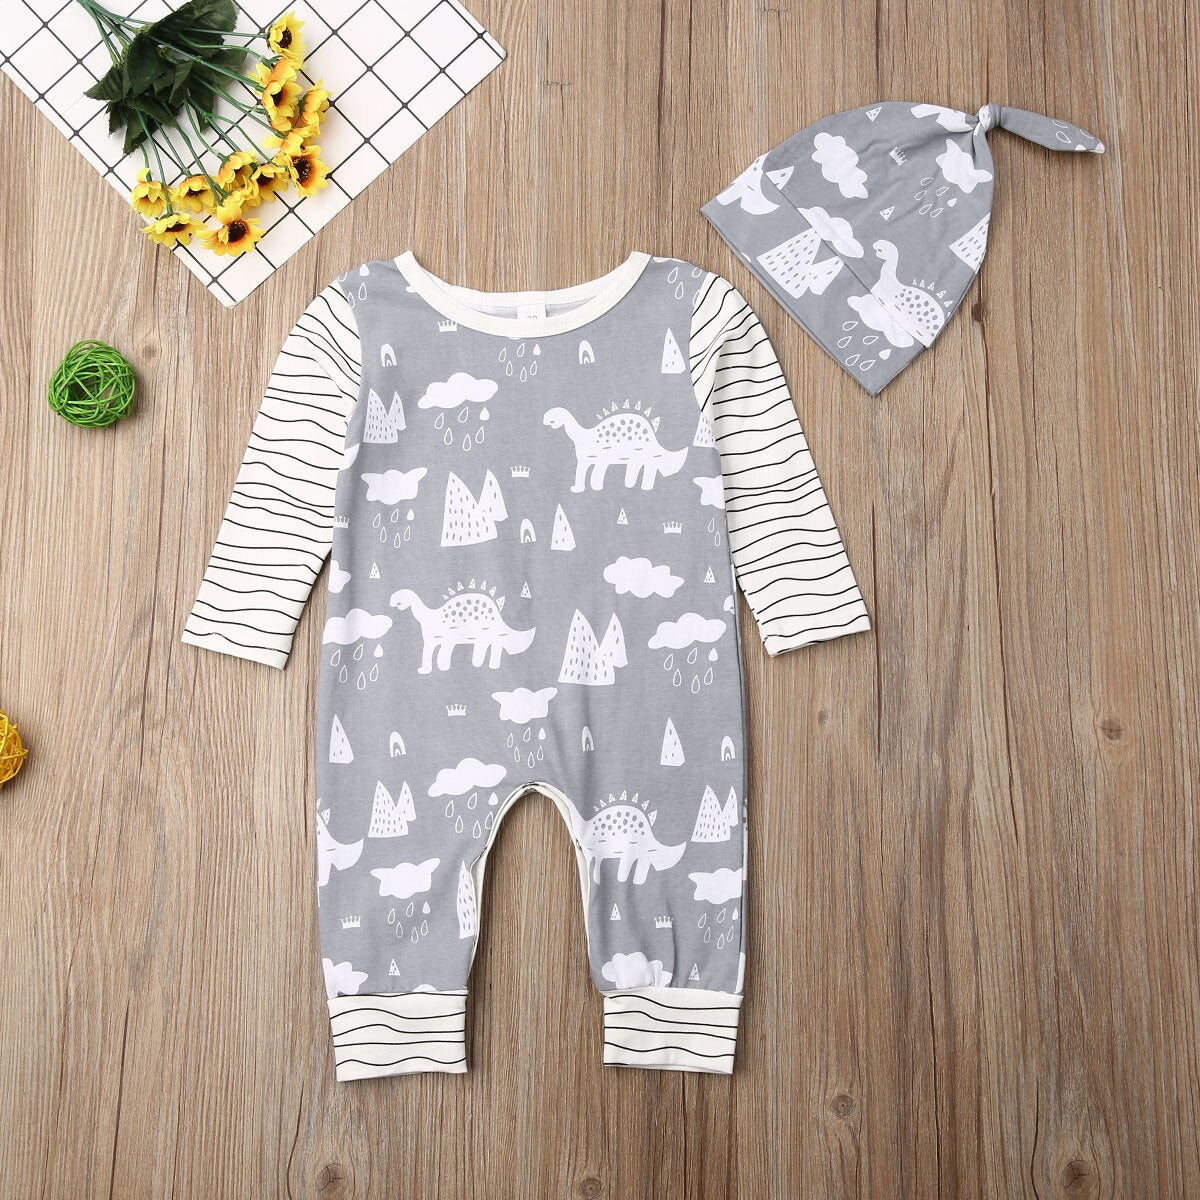 Pudcoco Autumn Newborn Baby Boy Girl Clothes Cotton Cartoon Dinosaur Print Long Sleeve Striped Romper Jumpsuit Hat 2Pcs Outfits